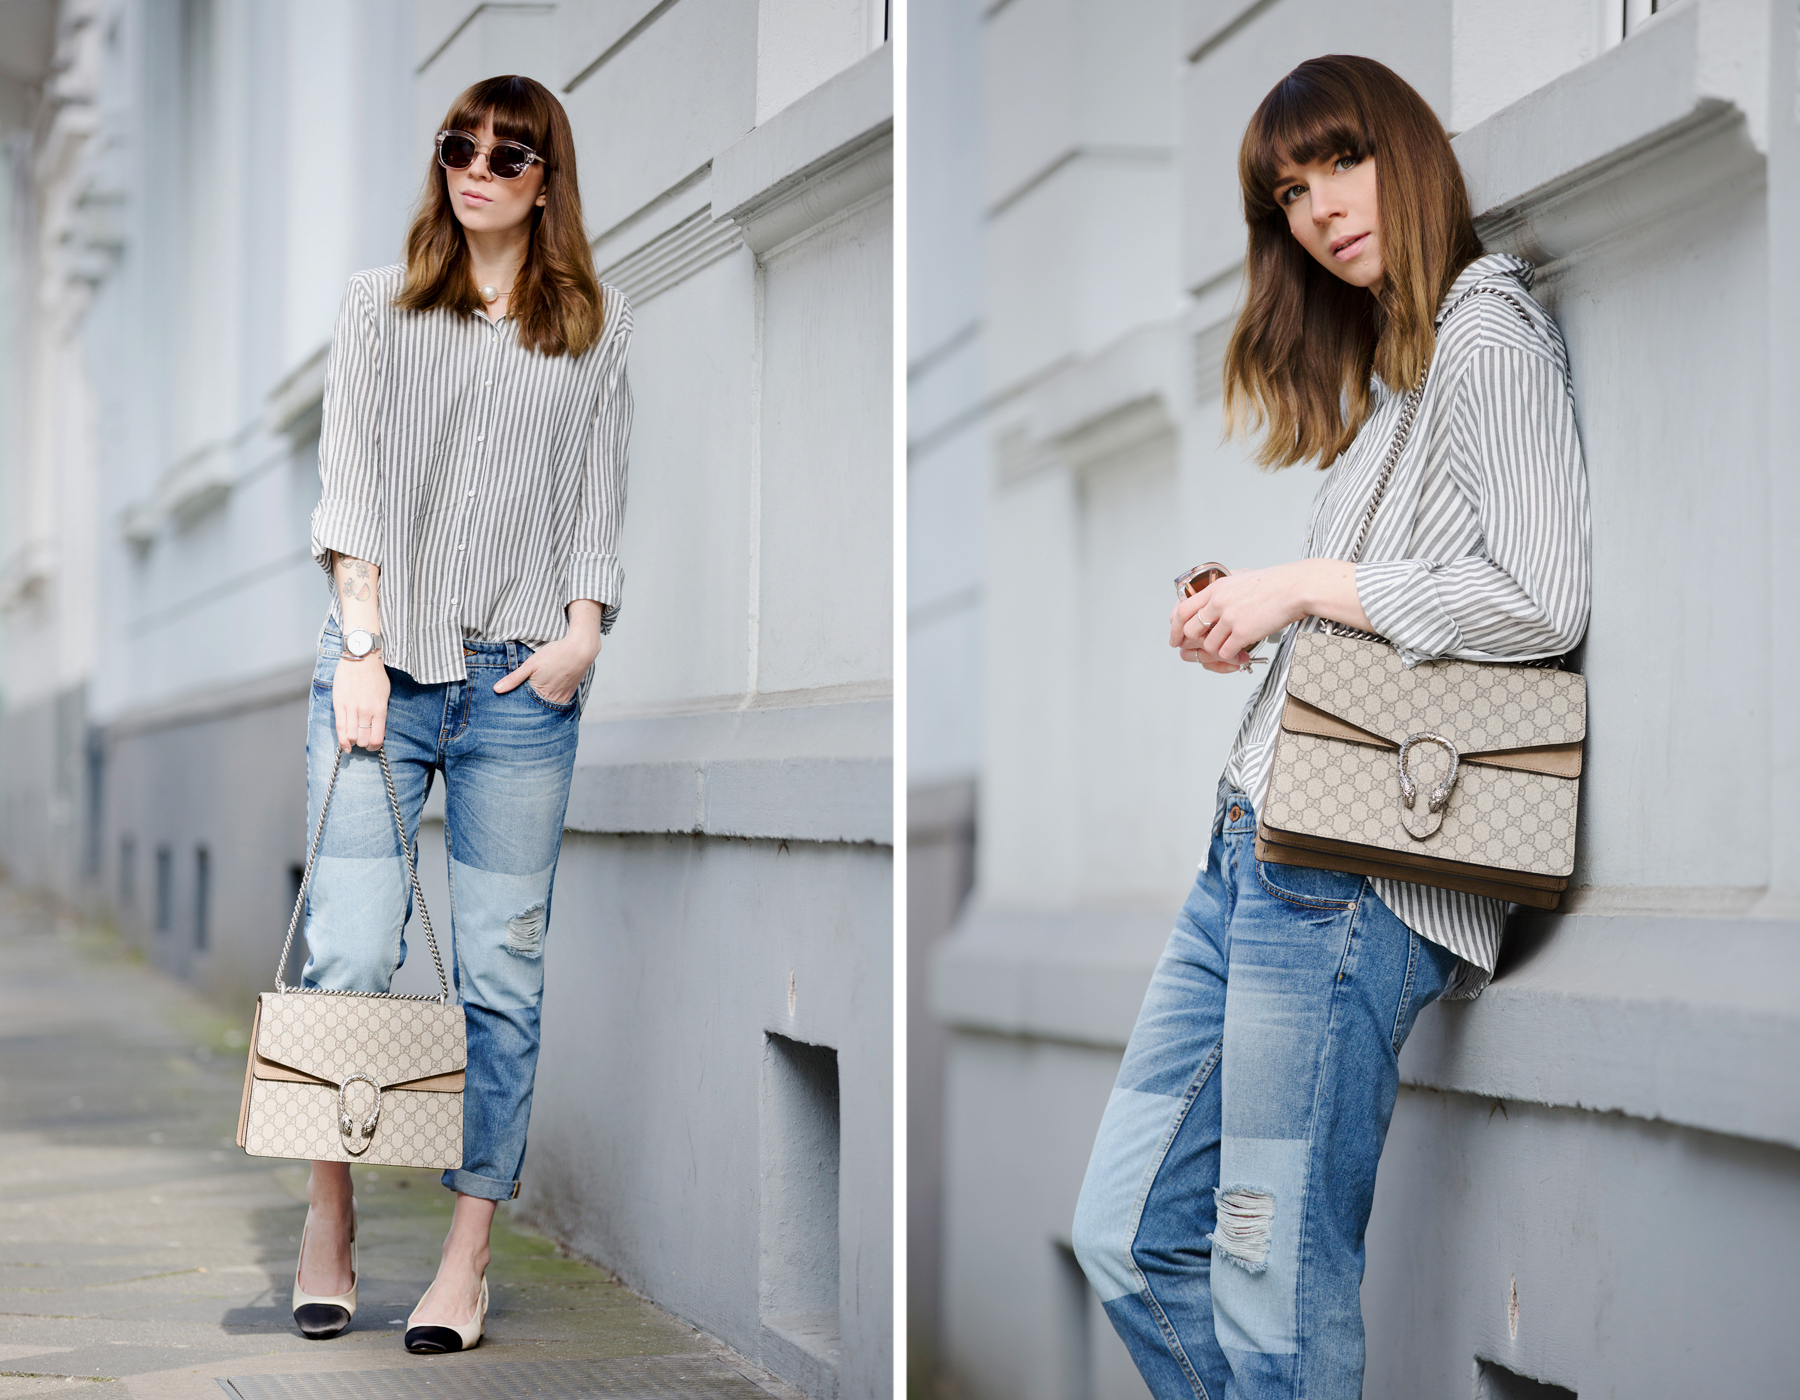 francaise striped shirt parisienne style bangs brunette jeans chanel lookalike heine pumps chic luxury gucci dionysus bag sun spring outfit ootd look le specs fashionblogger ricarda schernus cats & dogs blog 6